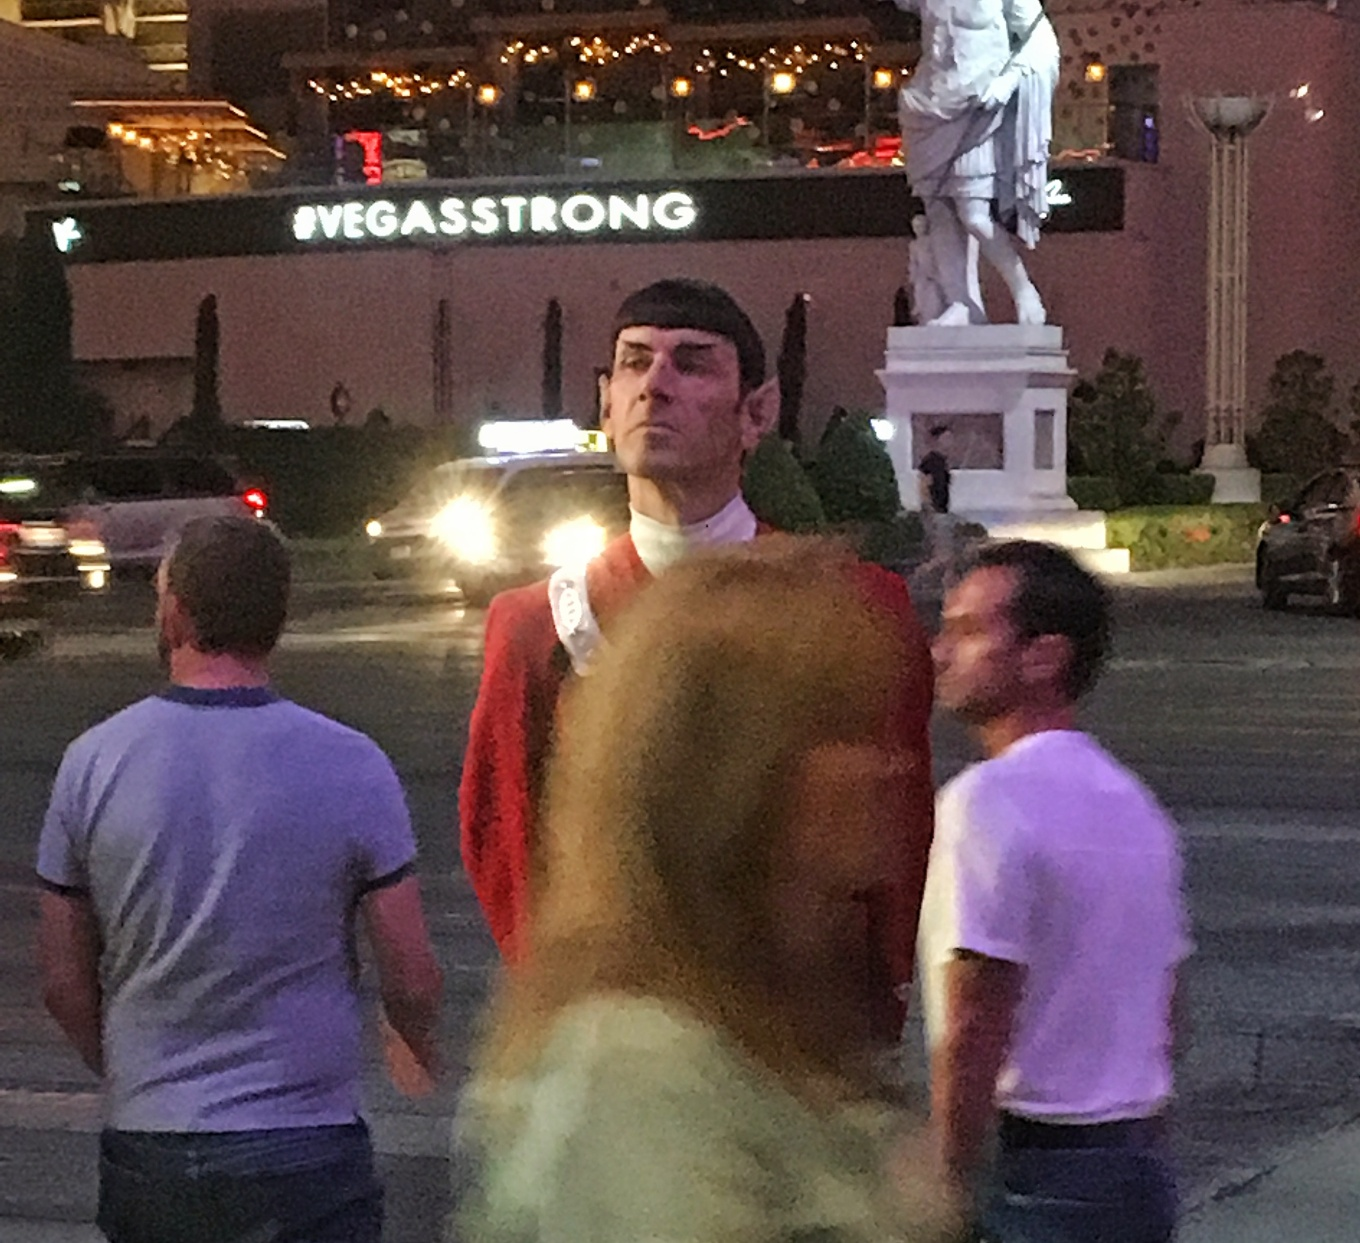 A Captain Spock street performer in Las Vegas, NV